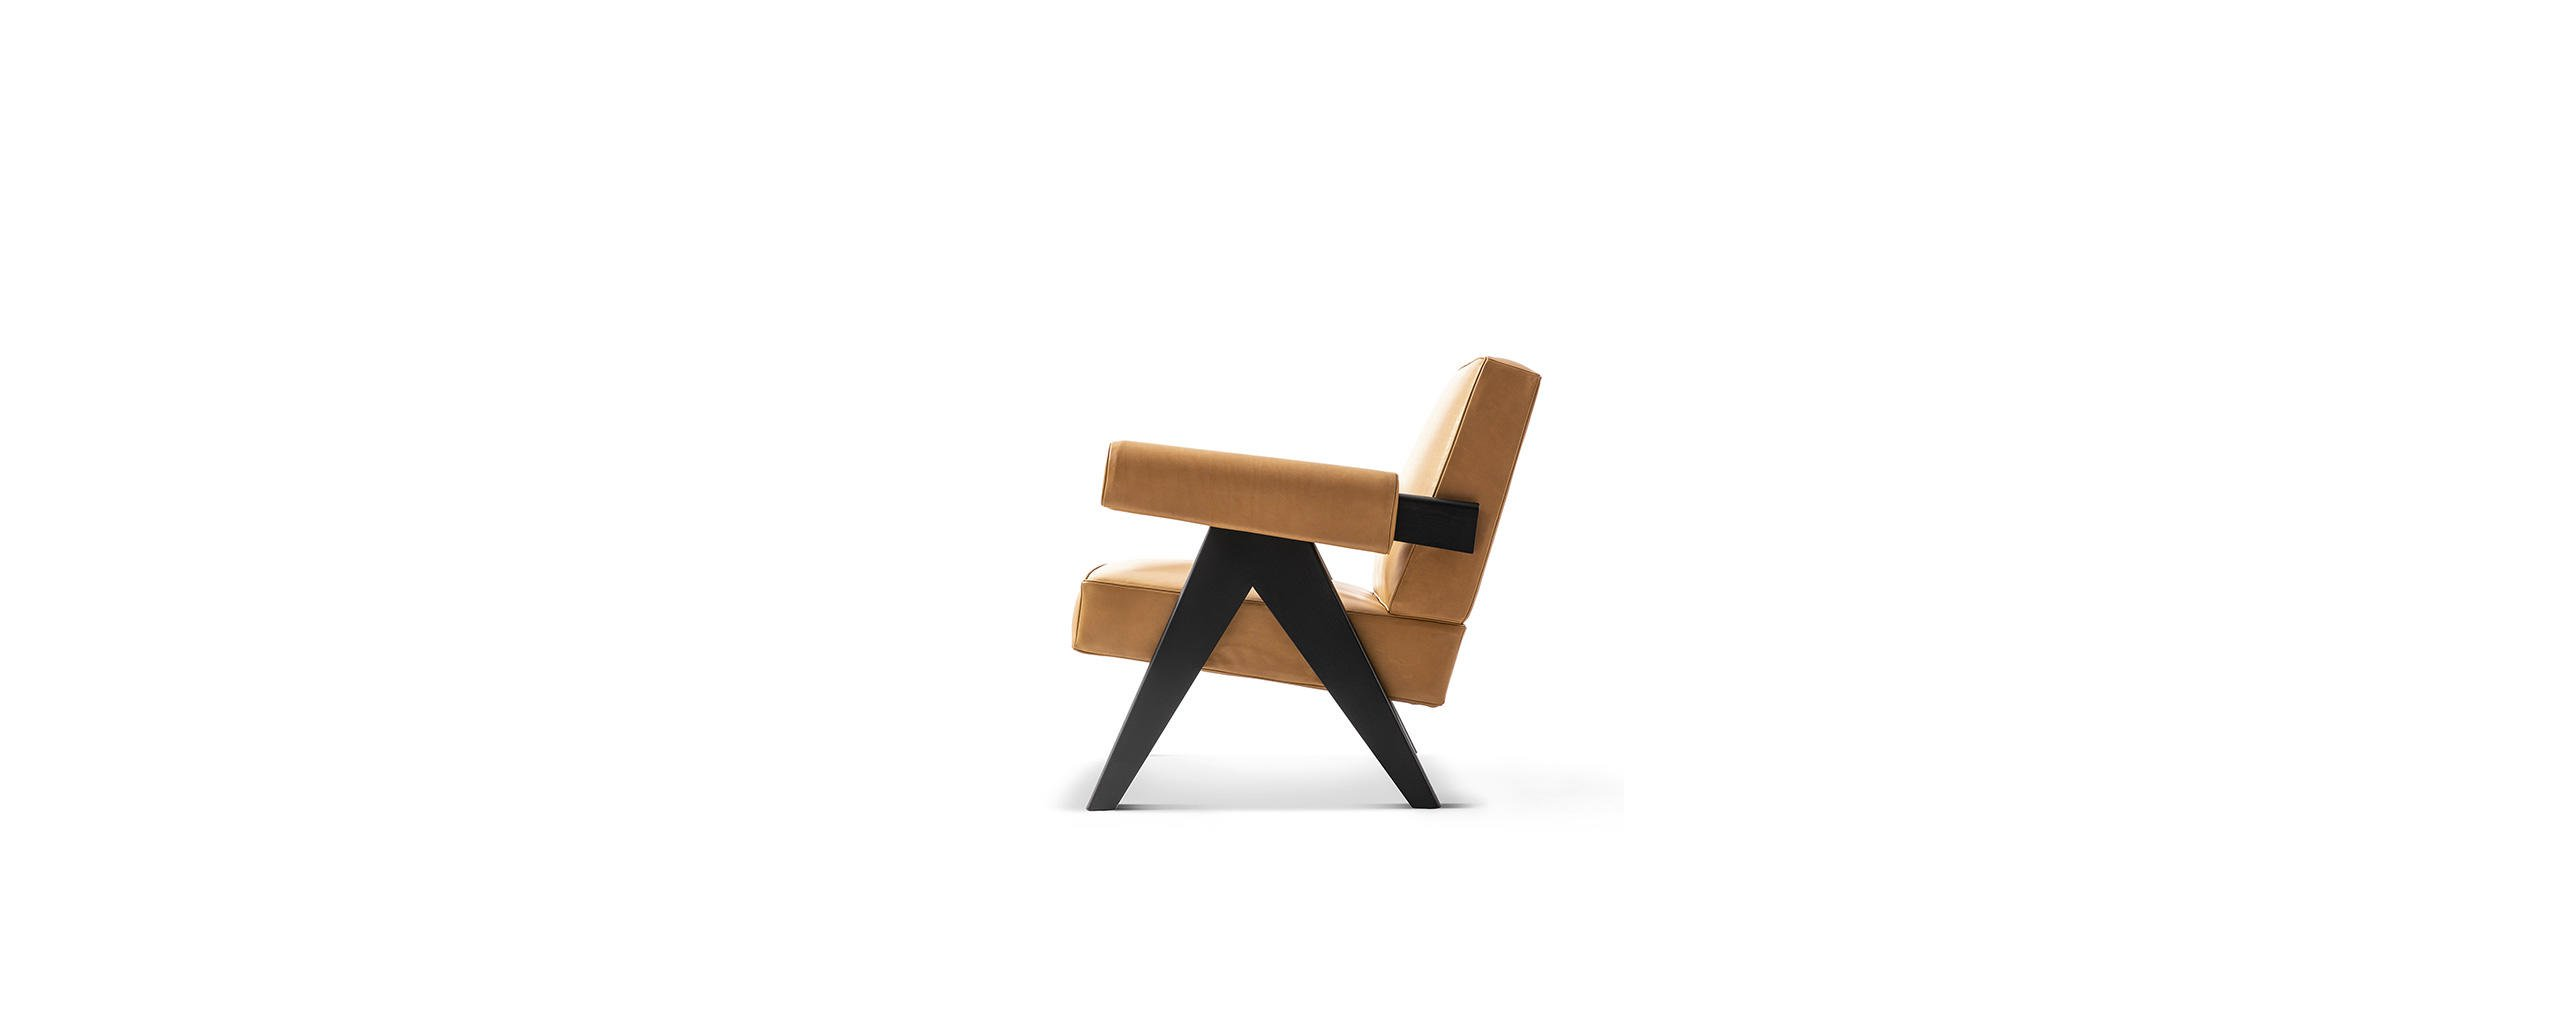 7_cassina_capitol_complex_armchair_hommage_o_pierre_jeanneret_cassina_rd